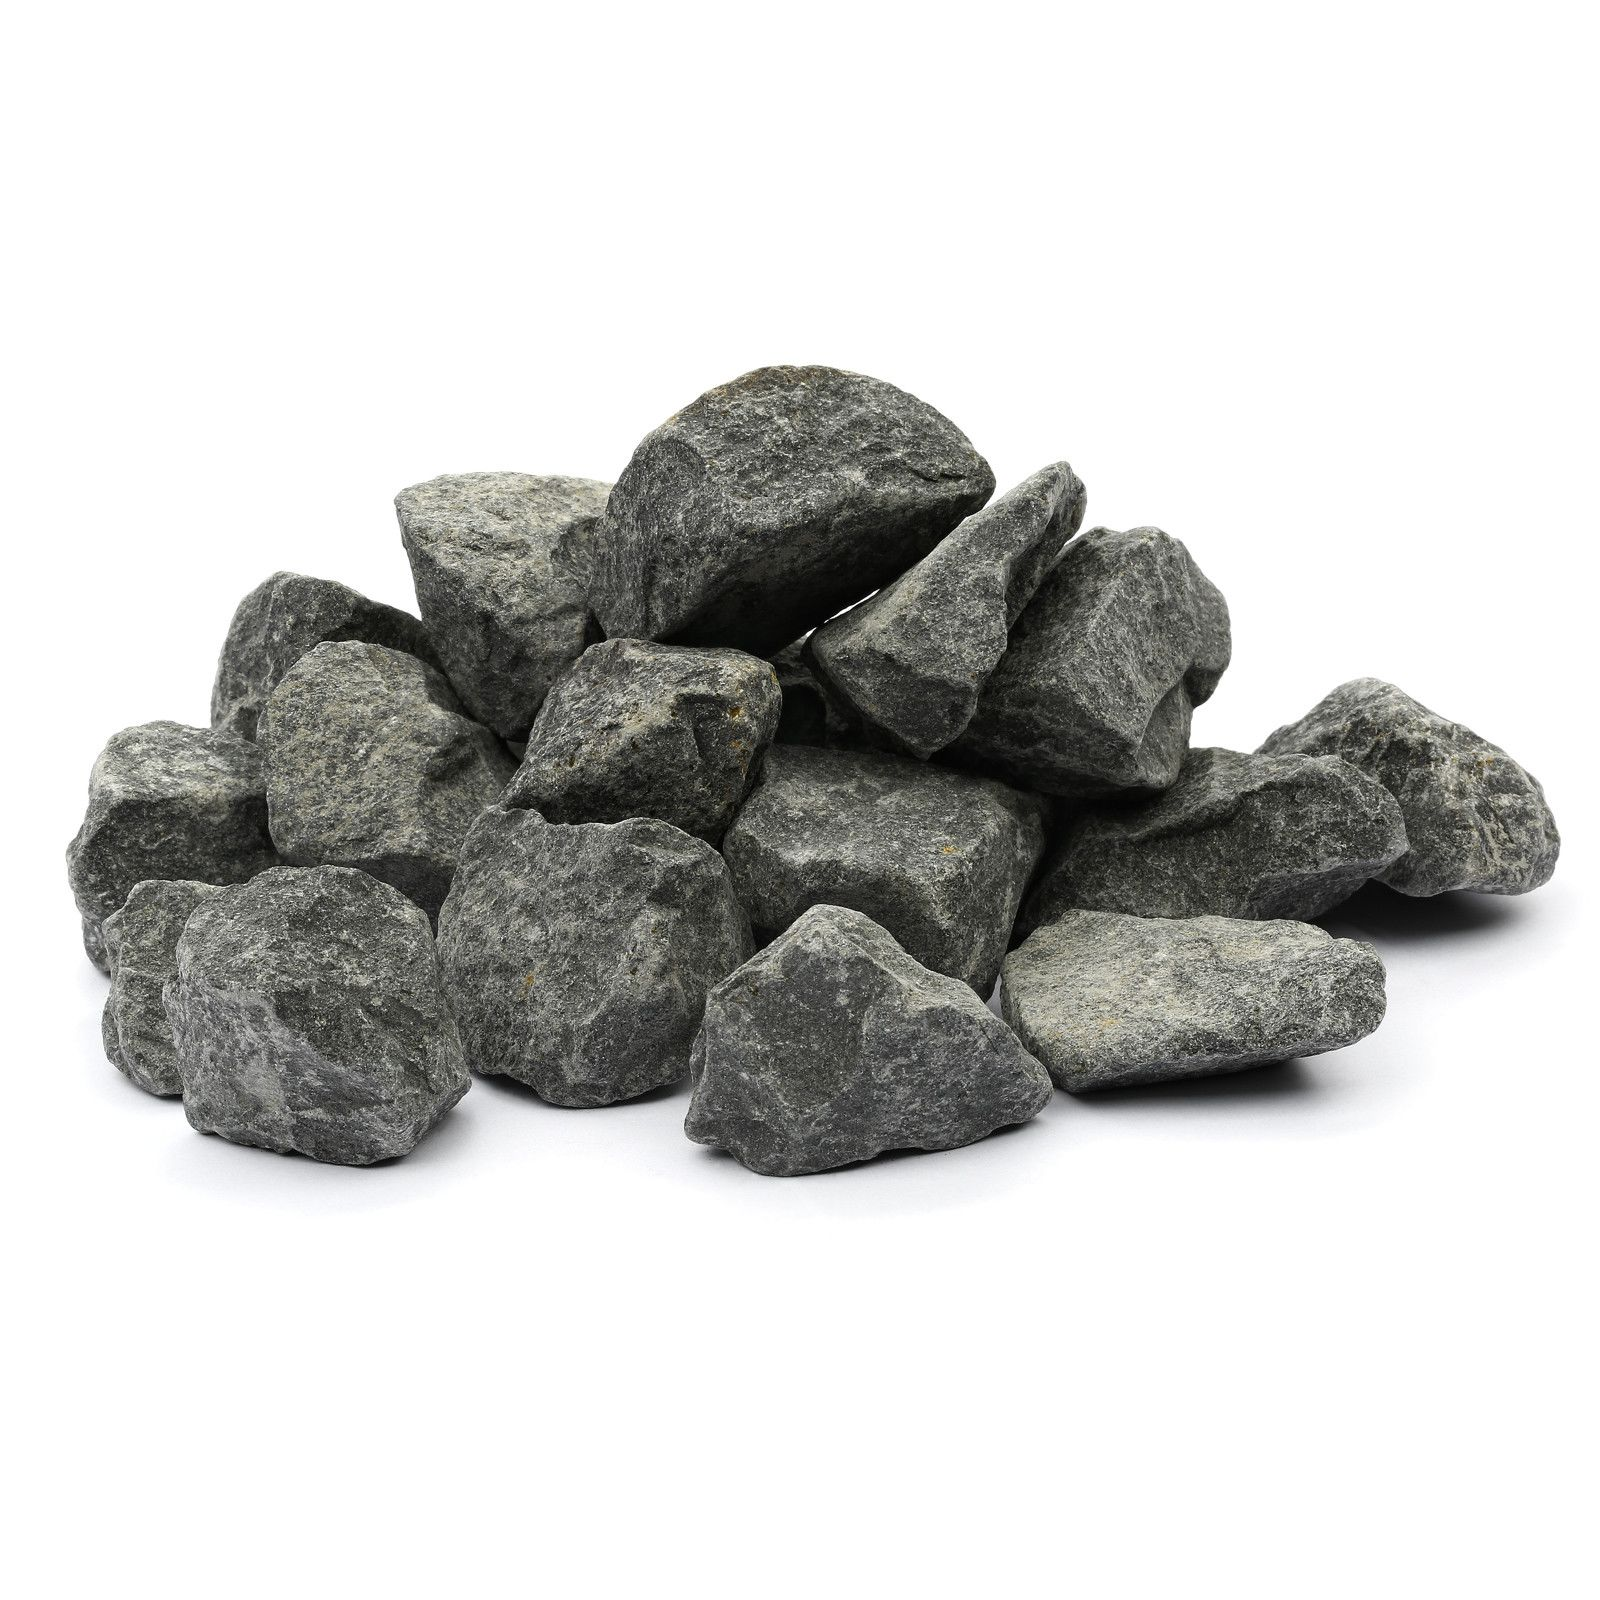 Aquasabi - Aquascaping Rocks - 500 g